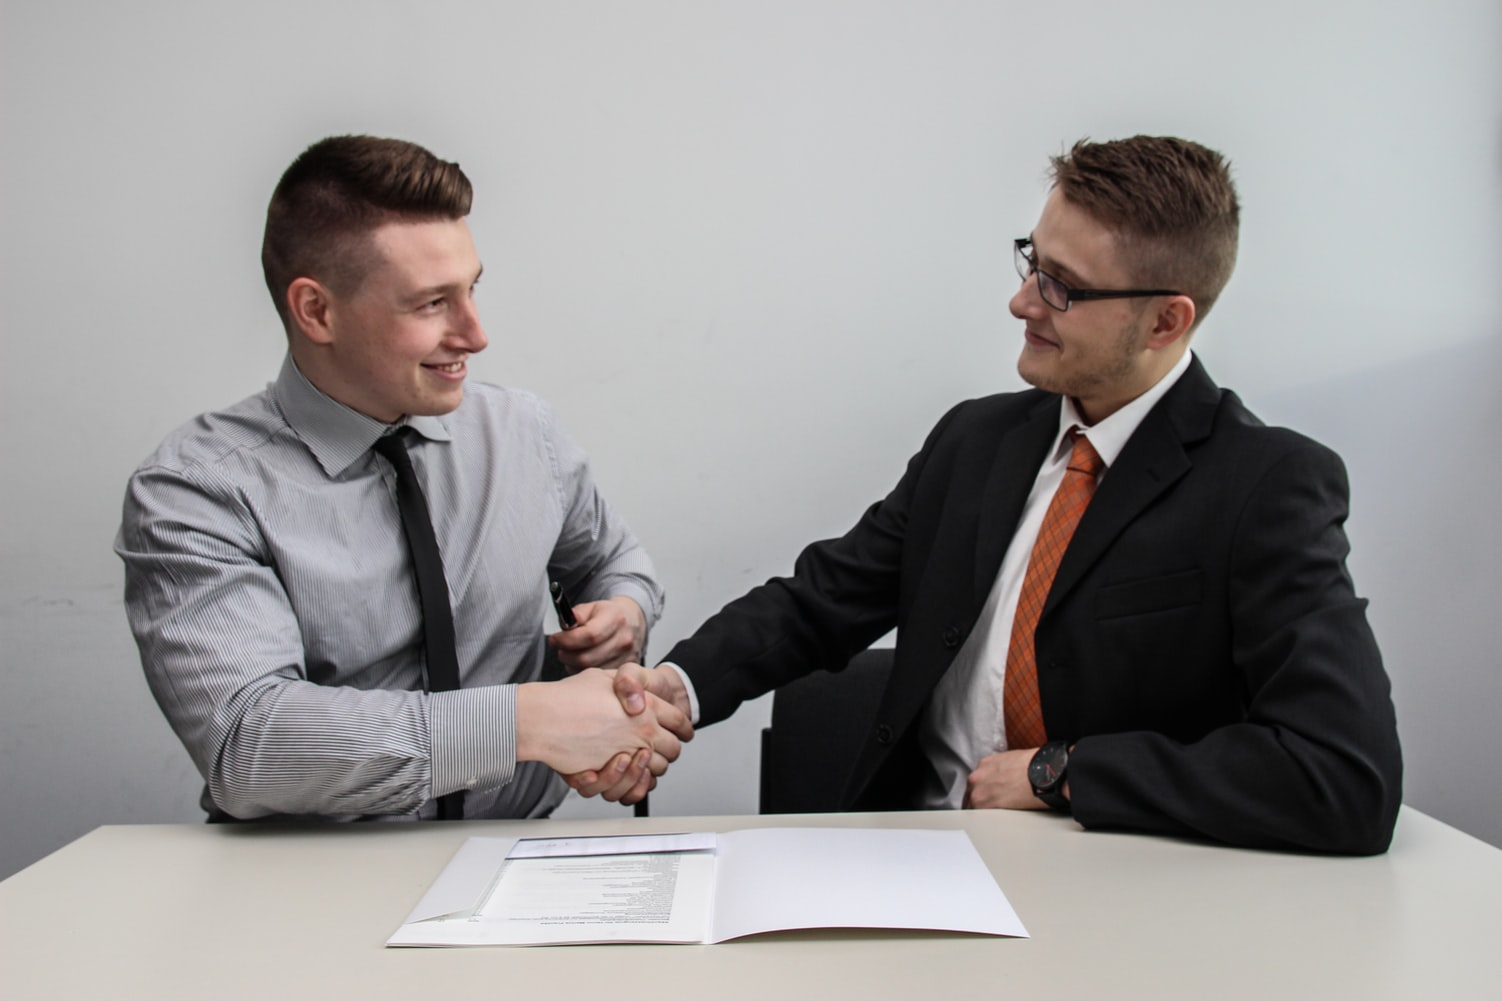 6 Reasons Why You Need To Provide Insurance To Your Contract Works